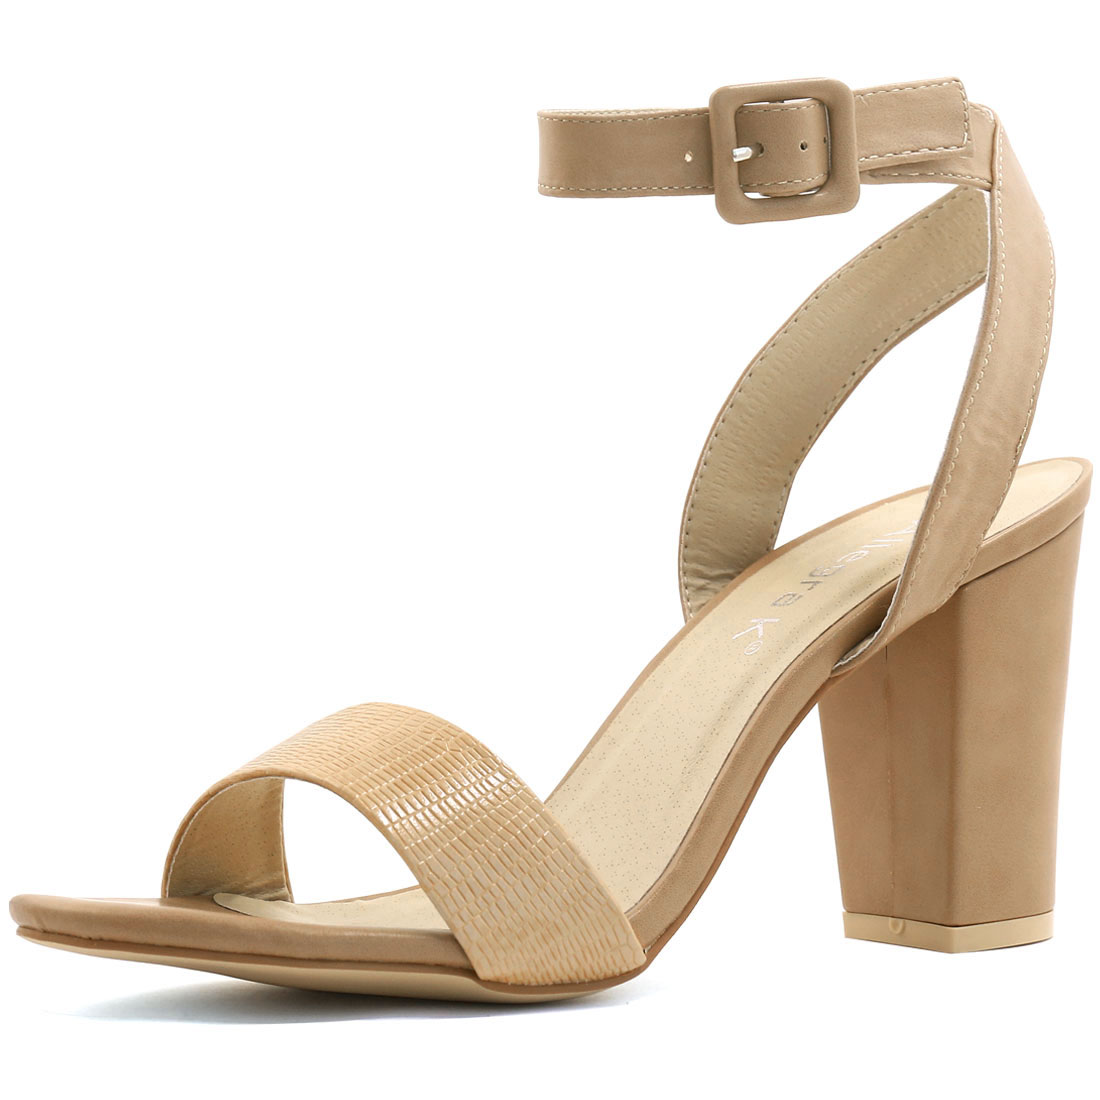 Woman Textured Vamp Chunky Heel Ankle Strap Sandals Tan US 9